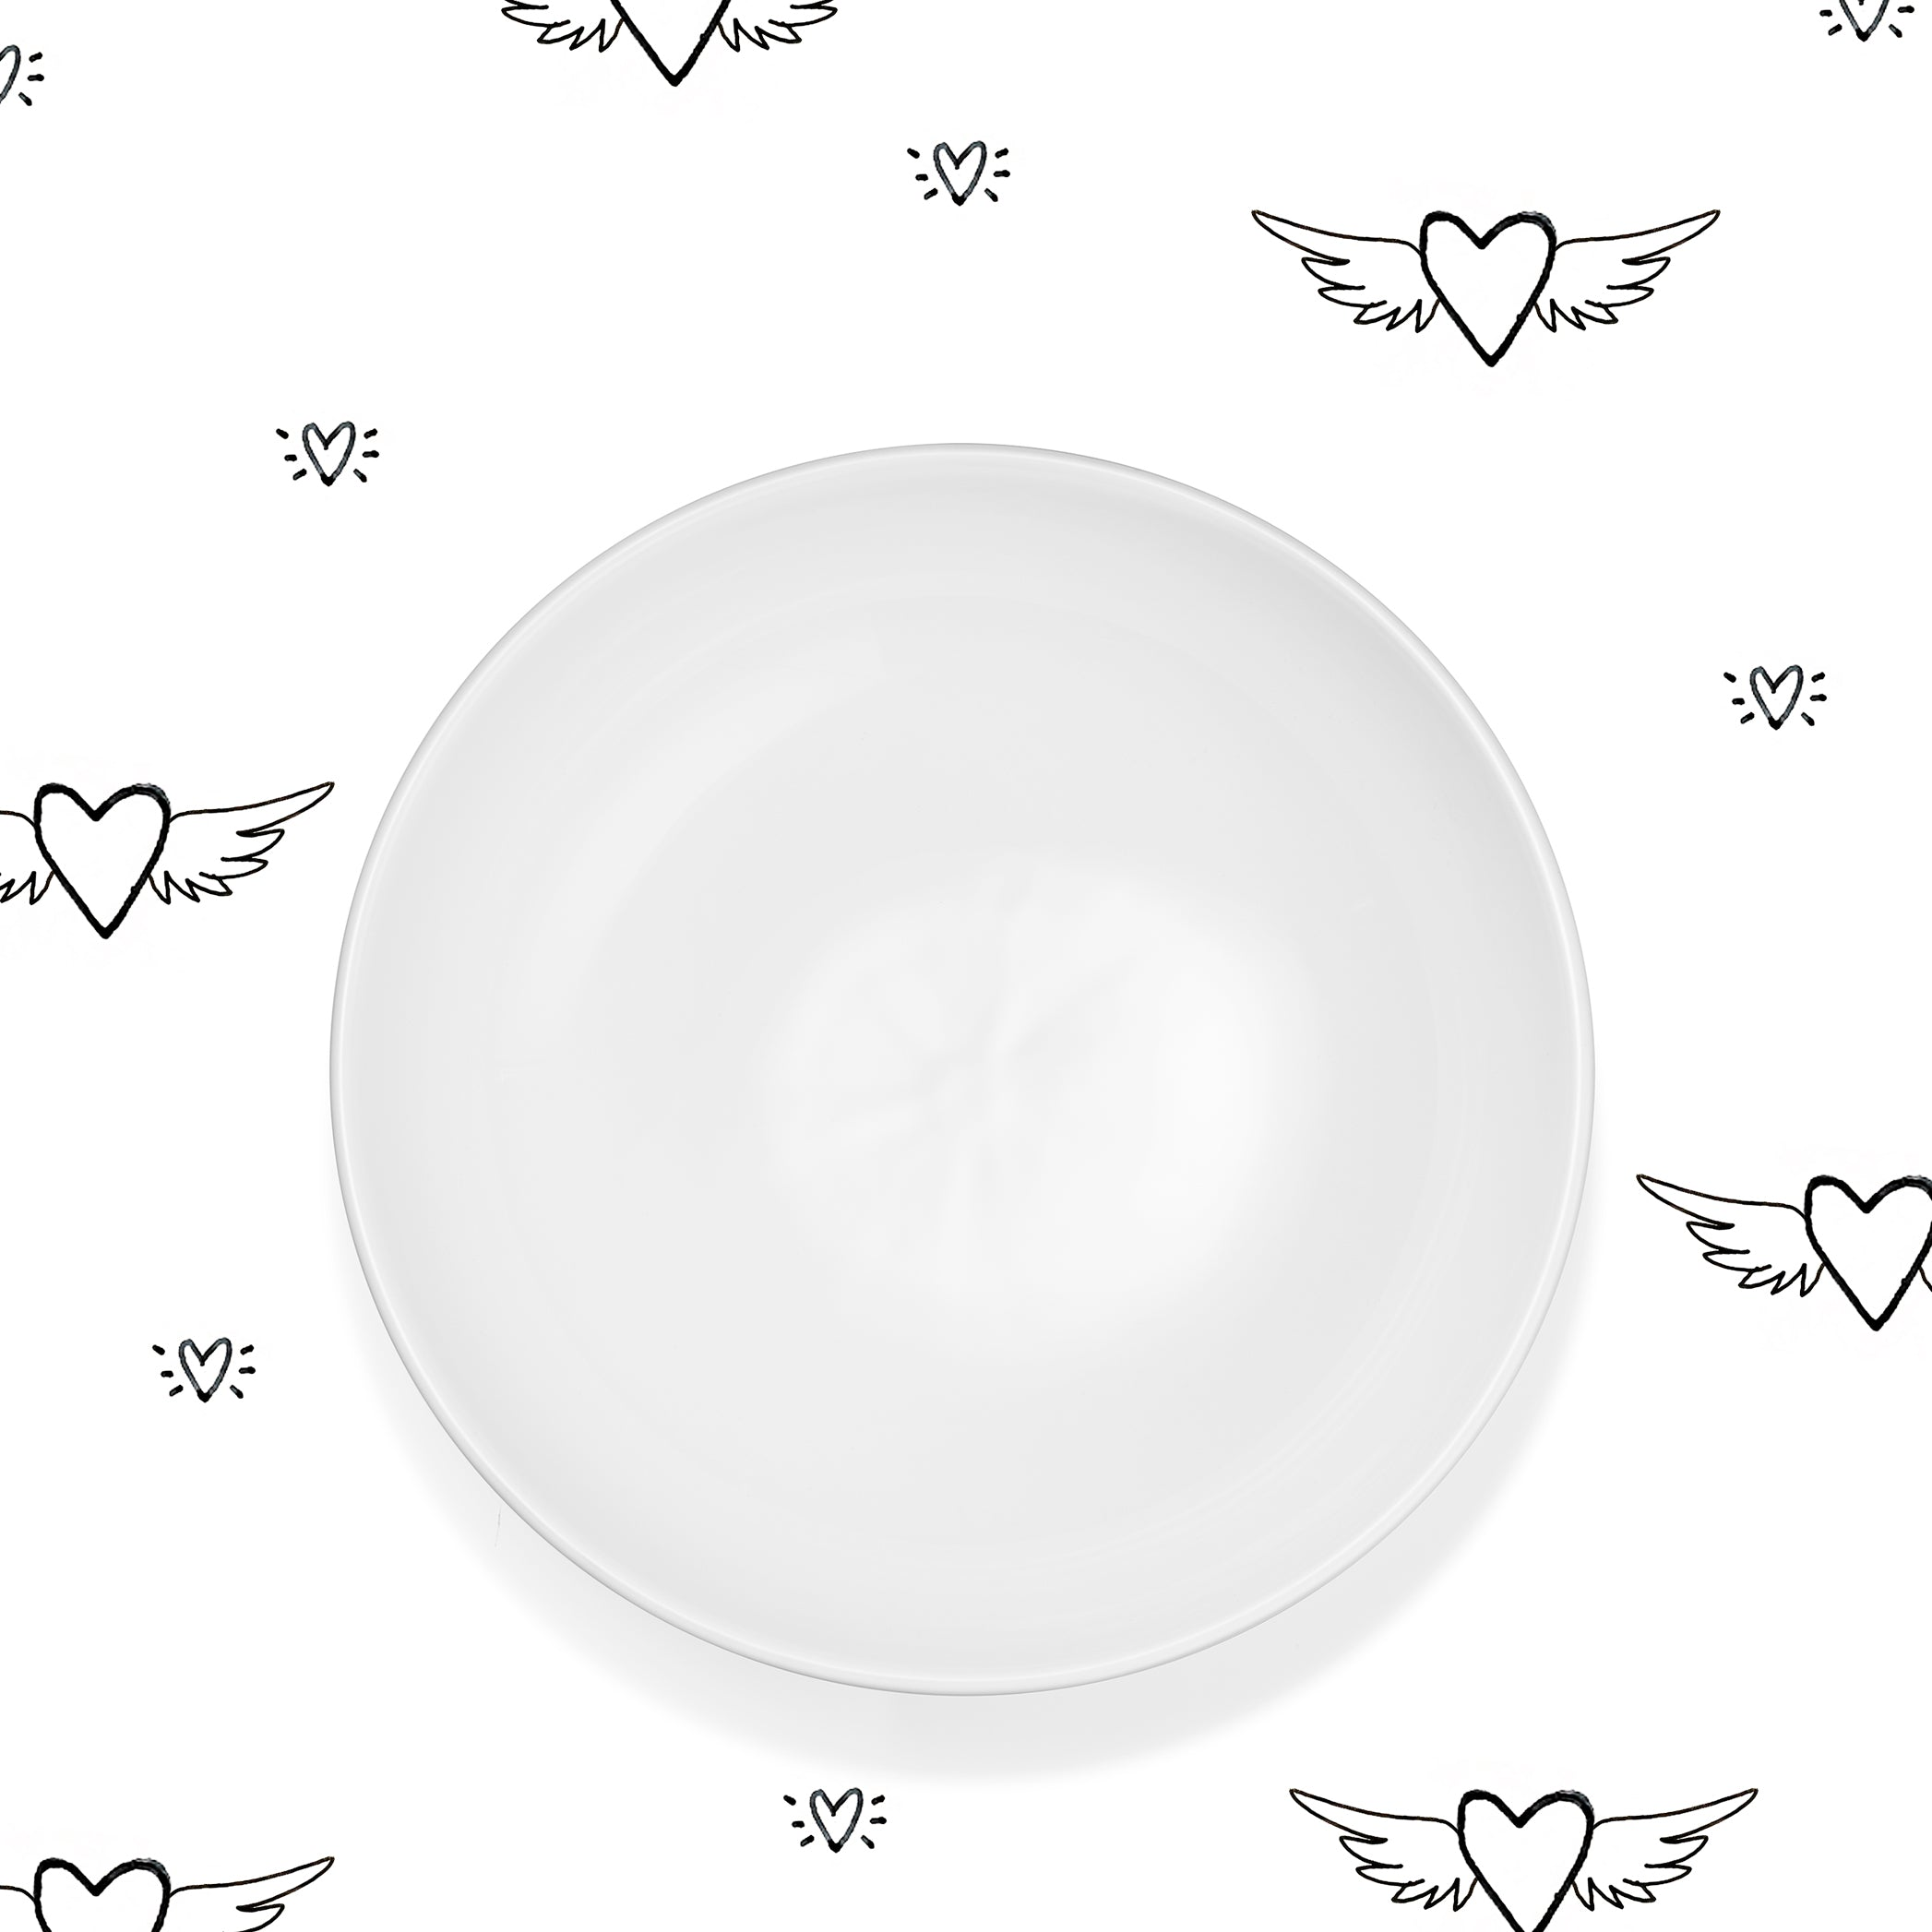 S&B Plain White Ceramic Serving Bowl, 30cm